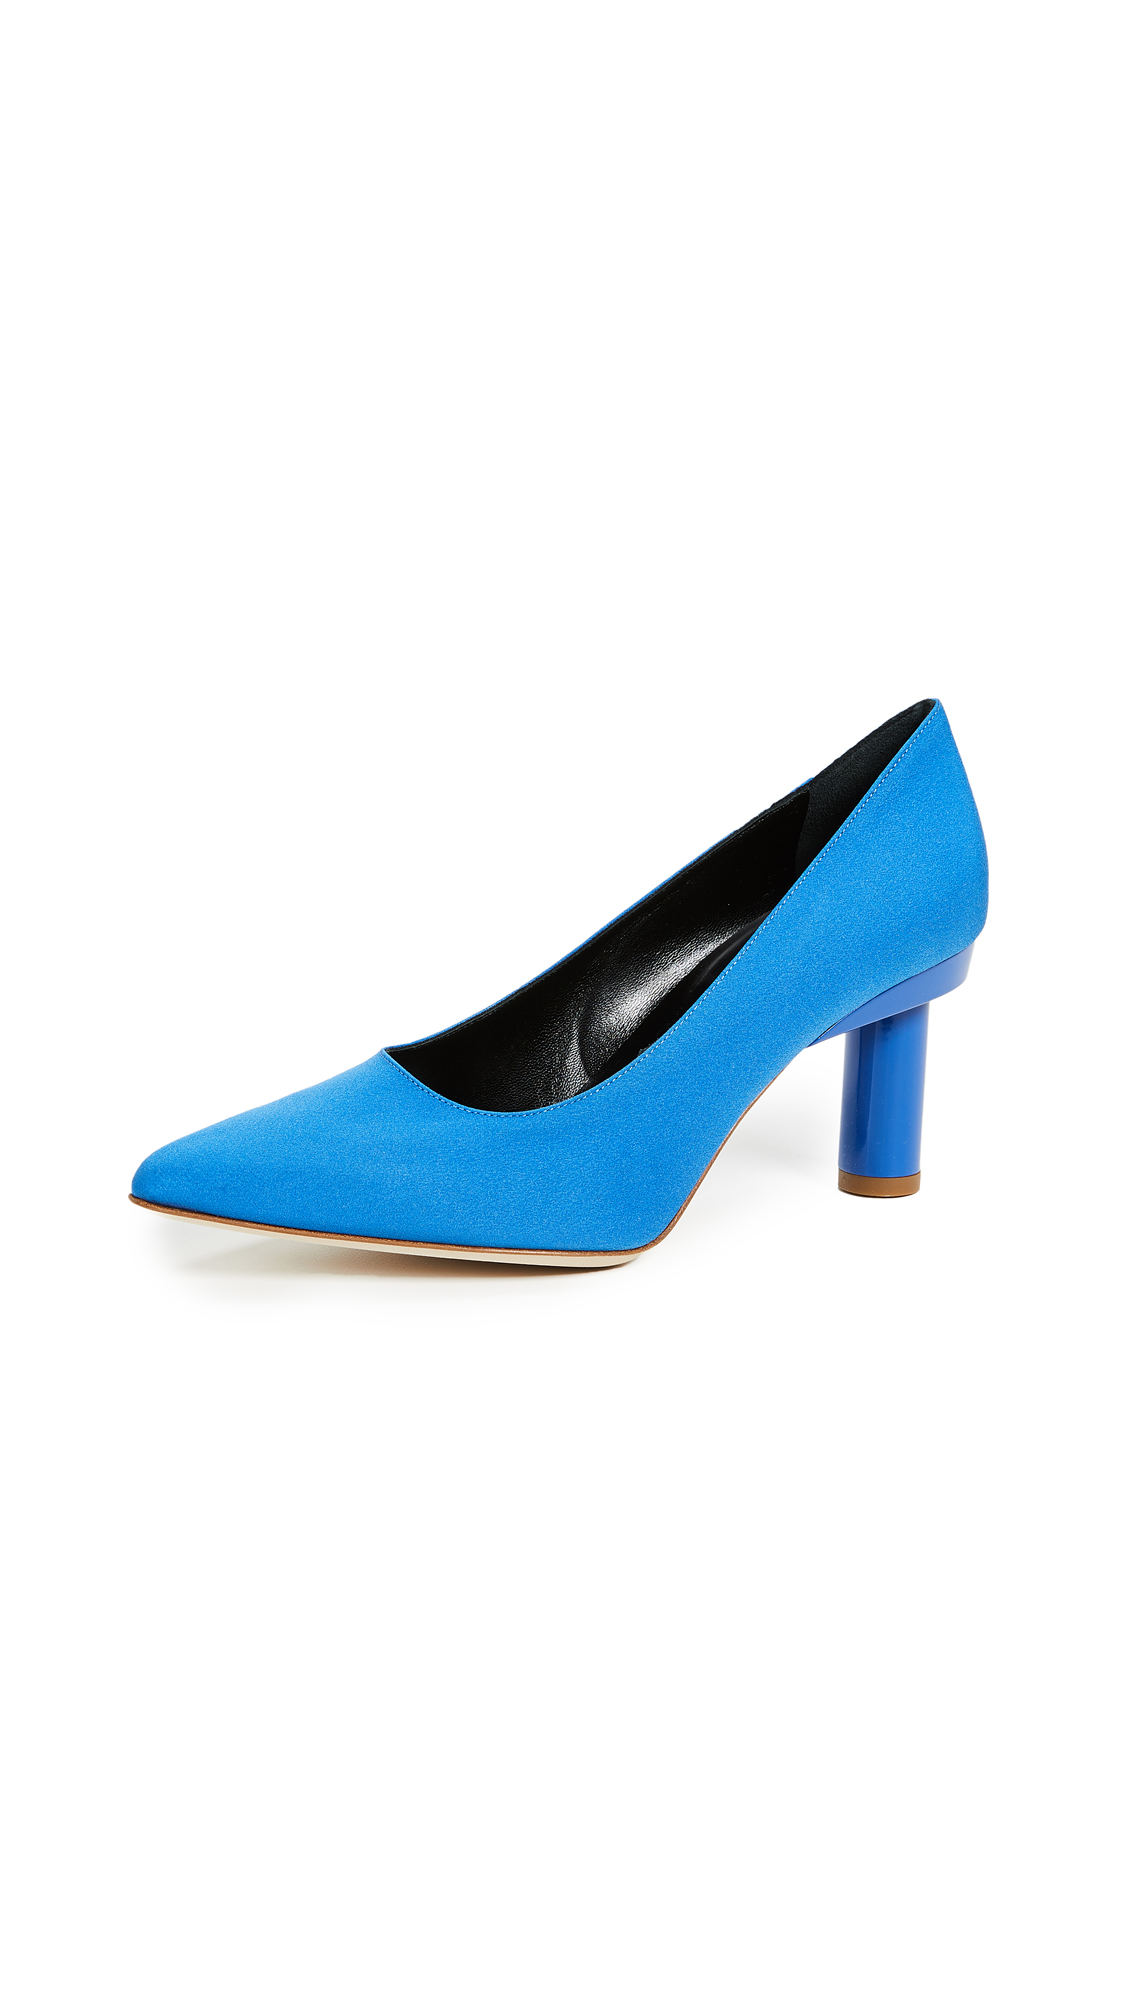 Tibi Zo Pumps - Blue